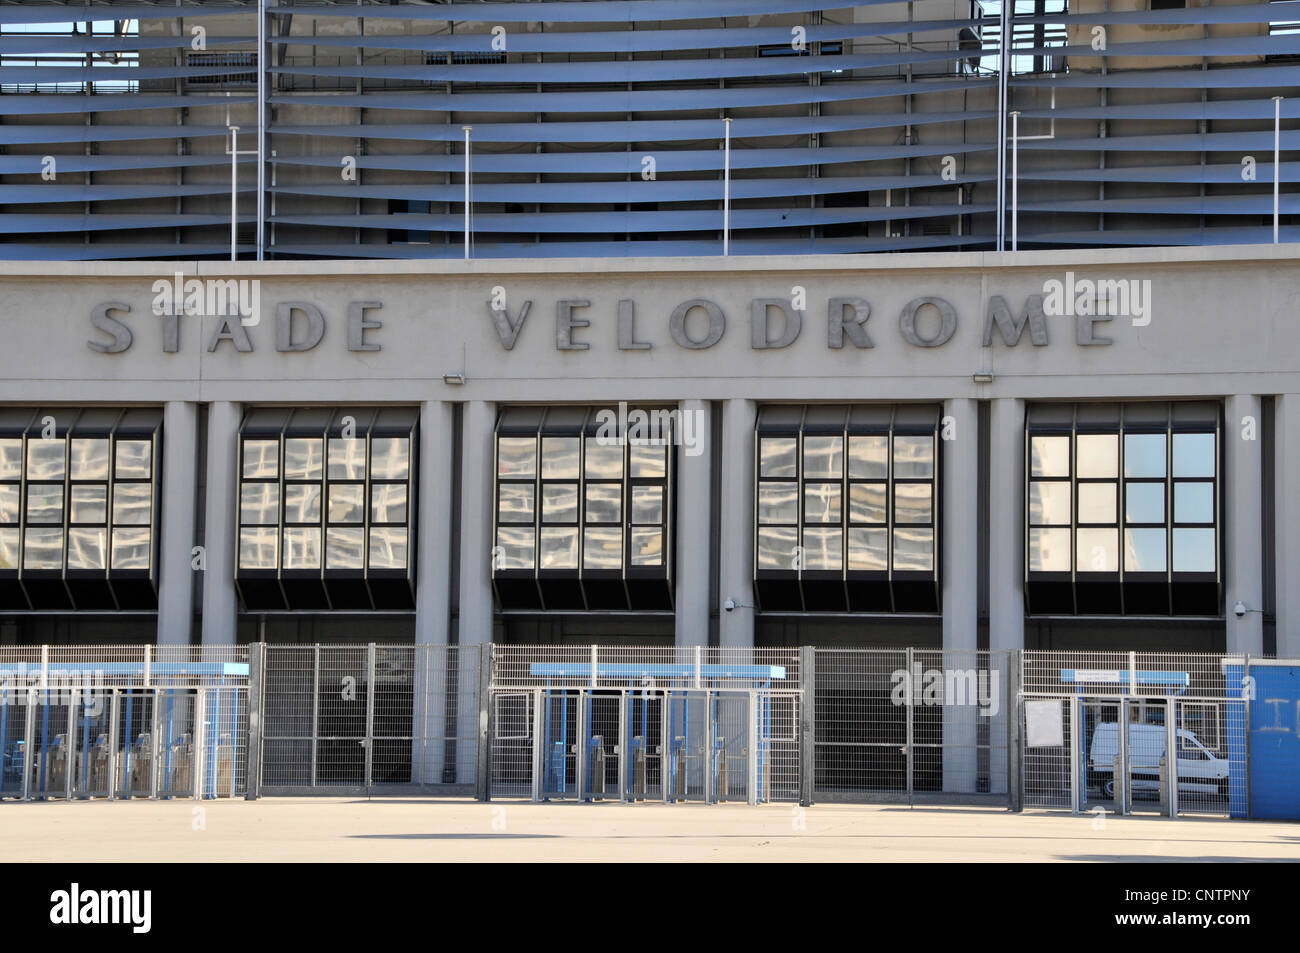 The Stade Vélodrome et le Musée de l'OM, home to football club Olympique de Marseillaise in Marseille,France. - Stock Image